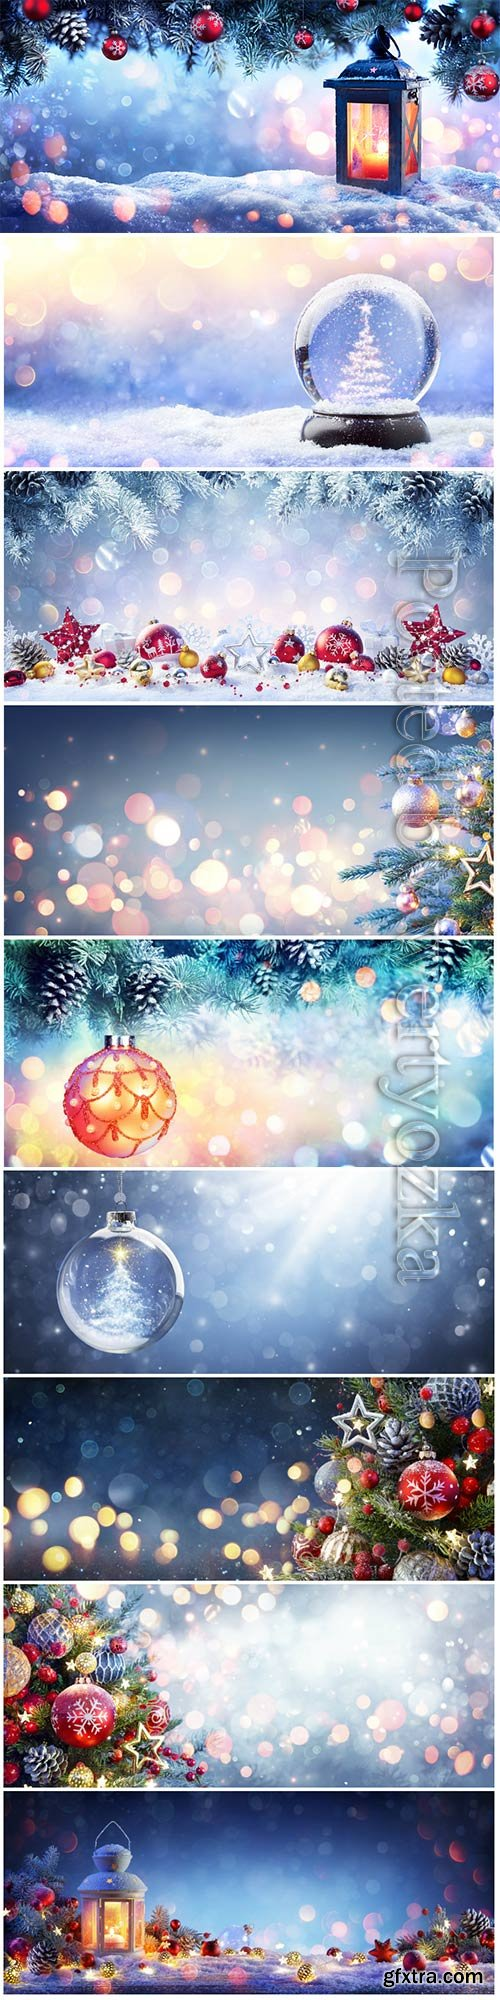 Wonderful New Year and Christmas Backgrounds